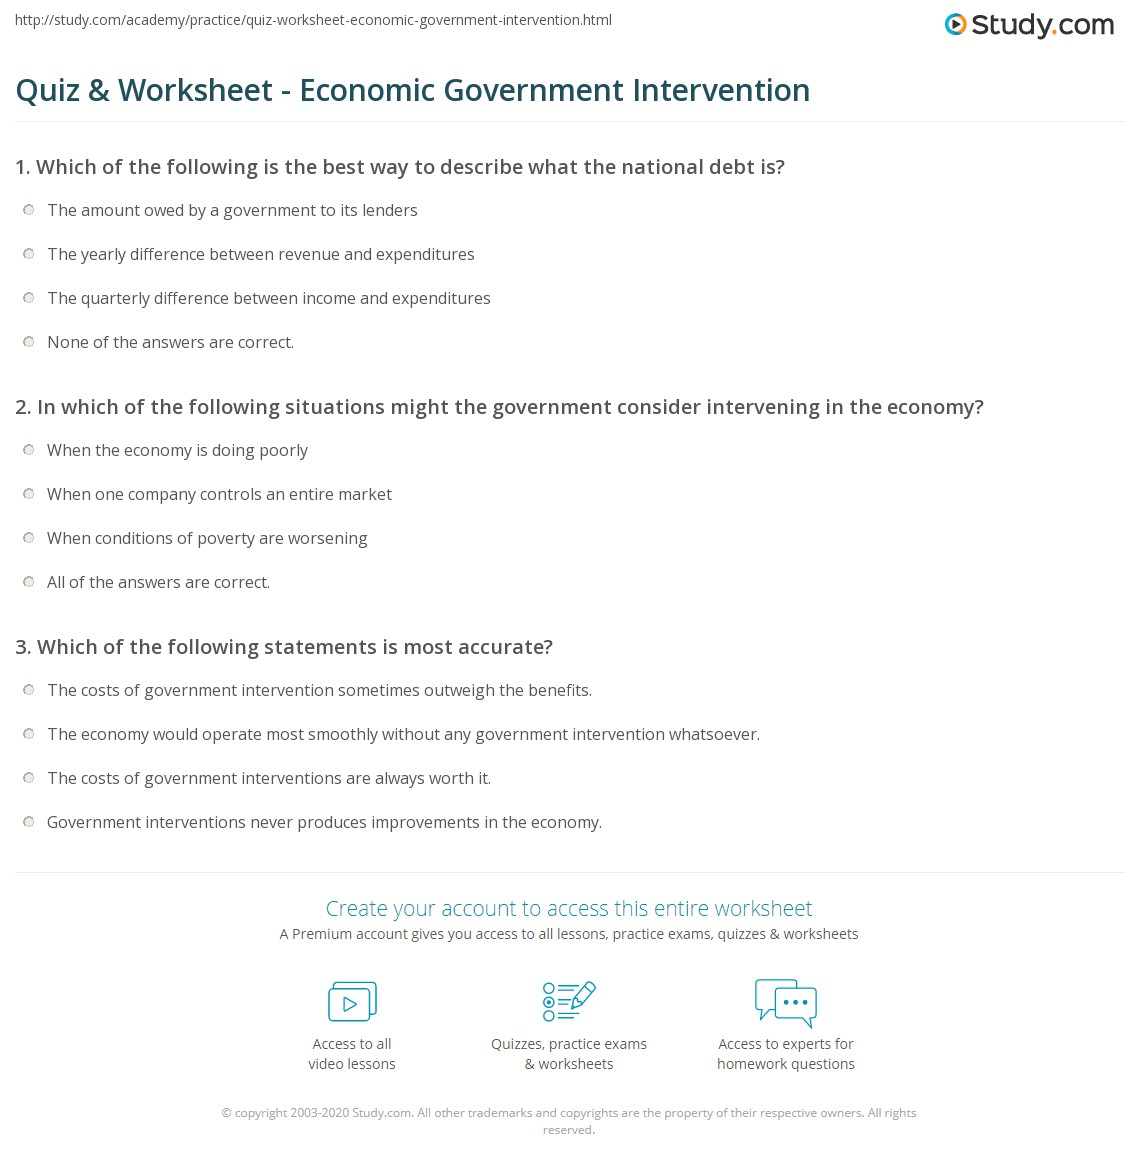 government intervention in venezuelas economy One of the main issues in economics is the extent to which the government should intervene in the economy free market economists argue that government intervention should be strictly.